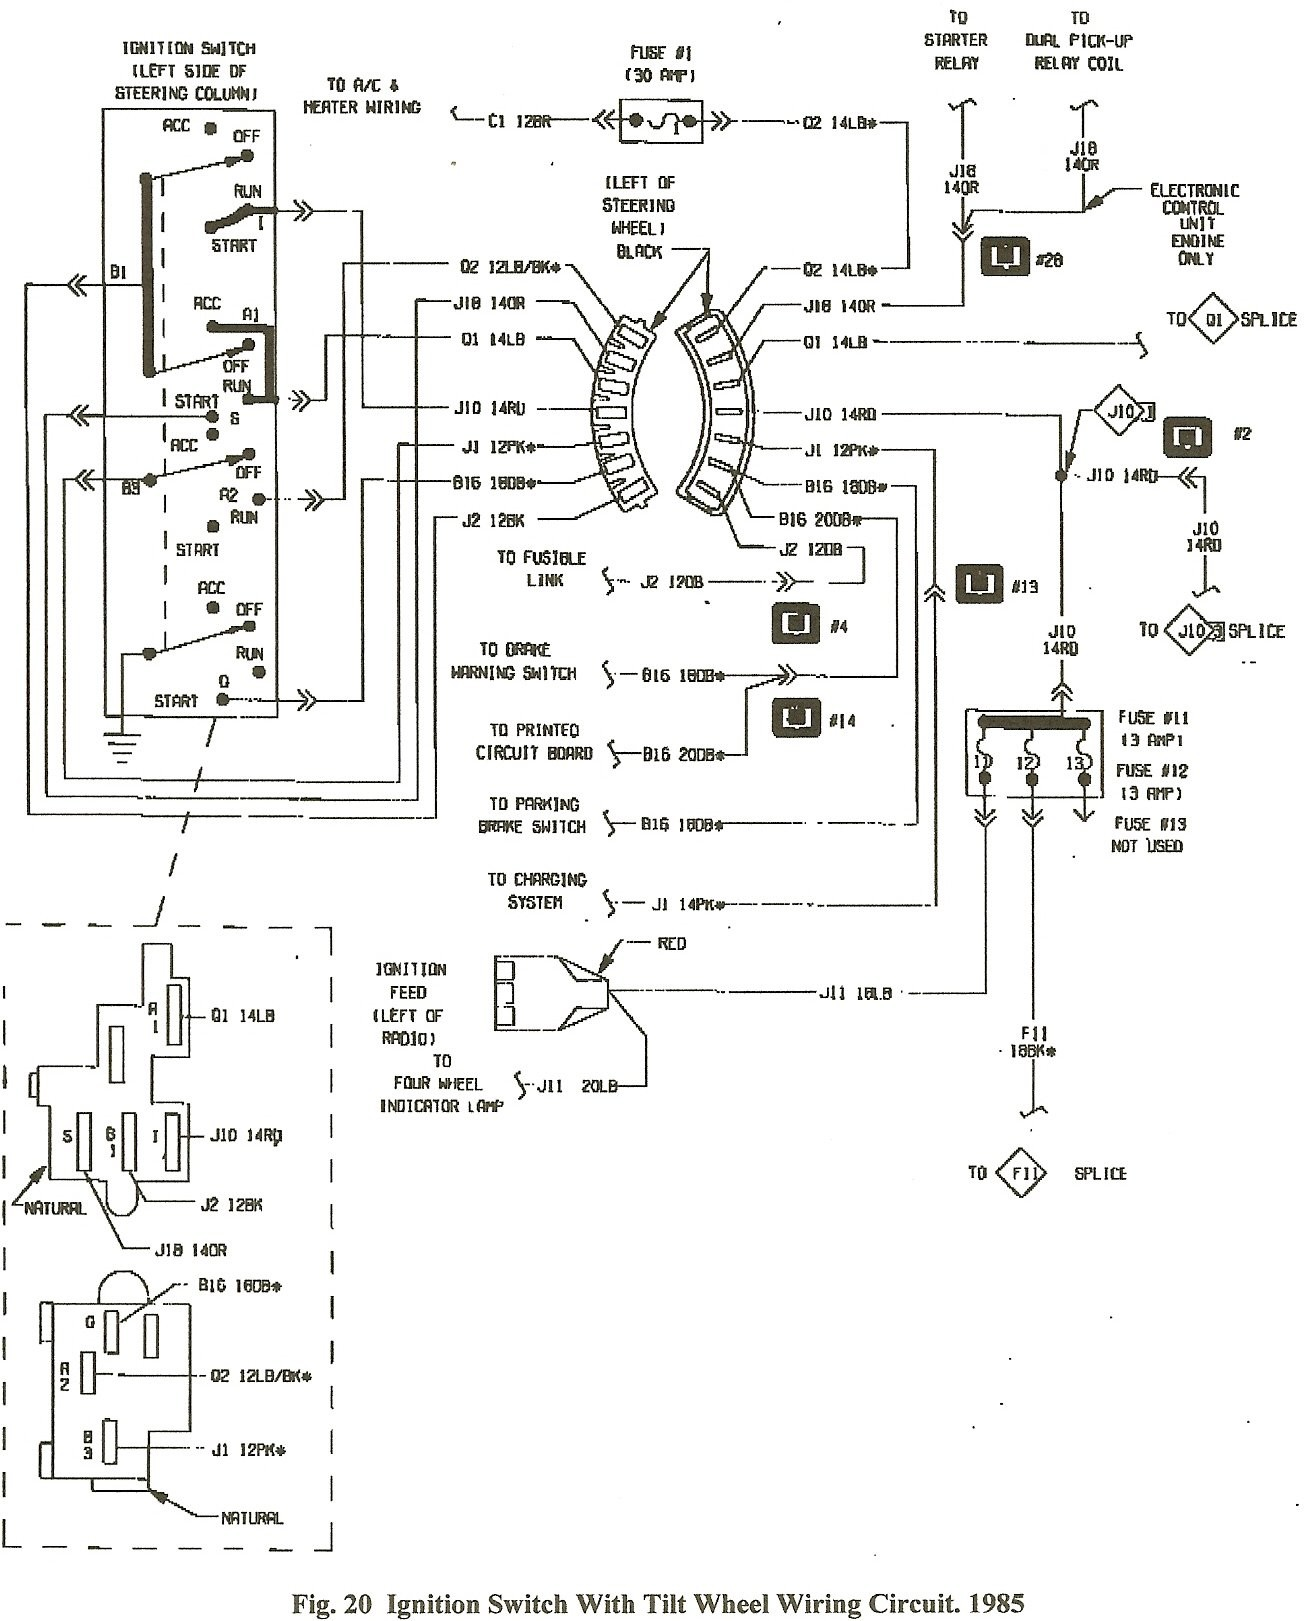 86 Dodge D150 Fuse Box Diagram | Wiring Diagram on chevrolet cruze fuse box, toyota supra fuse box, dodge stealth fuse box, chevy blazer fuse box, dodge challenger fuse box, hyundai genesis fuse box, chevy venture fuse box, dodge ram headlight fuse, chevrolet equinox fuse box, 2005 ram fuse box, lincoln continental fuse box, dodge d150 fuse box, dodge ram iod fuse, dodge truck fuse box, saturn fuse box, super duty fuse box, 1998 dodge fuse box, buick lesabre fuse box, dodge ram cruise control fuse, suzuki kizashi fuse box,